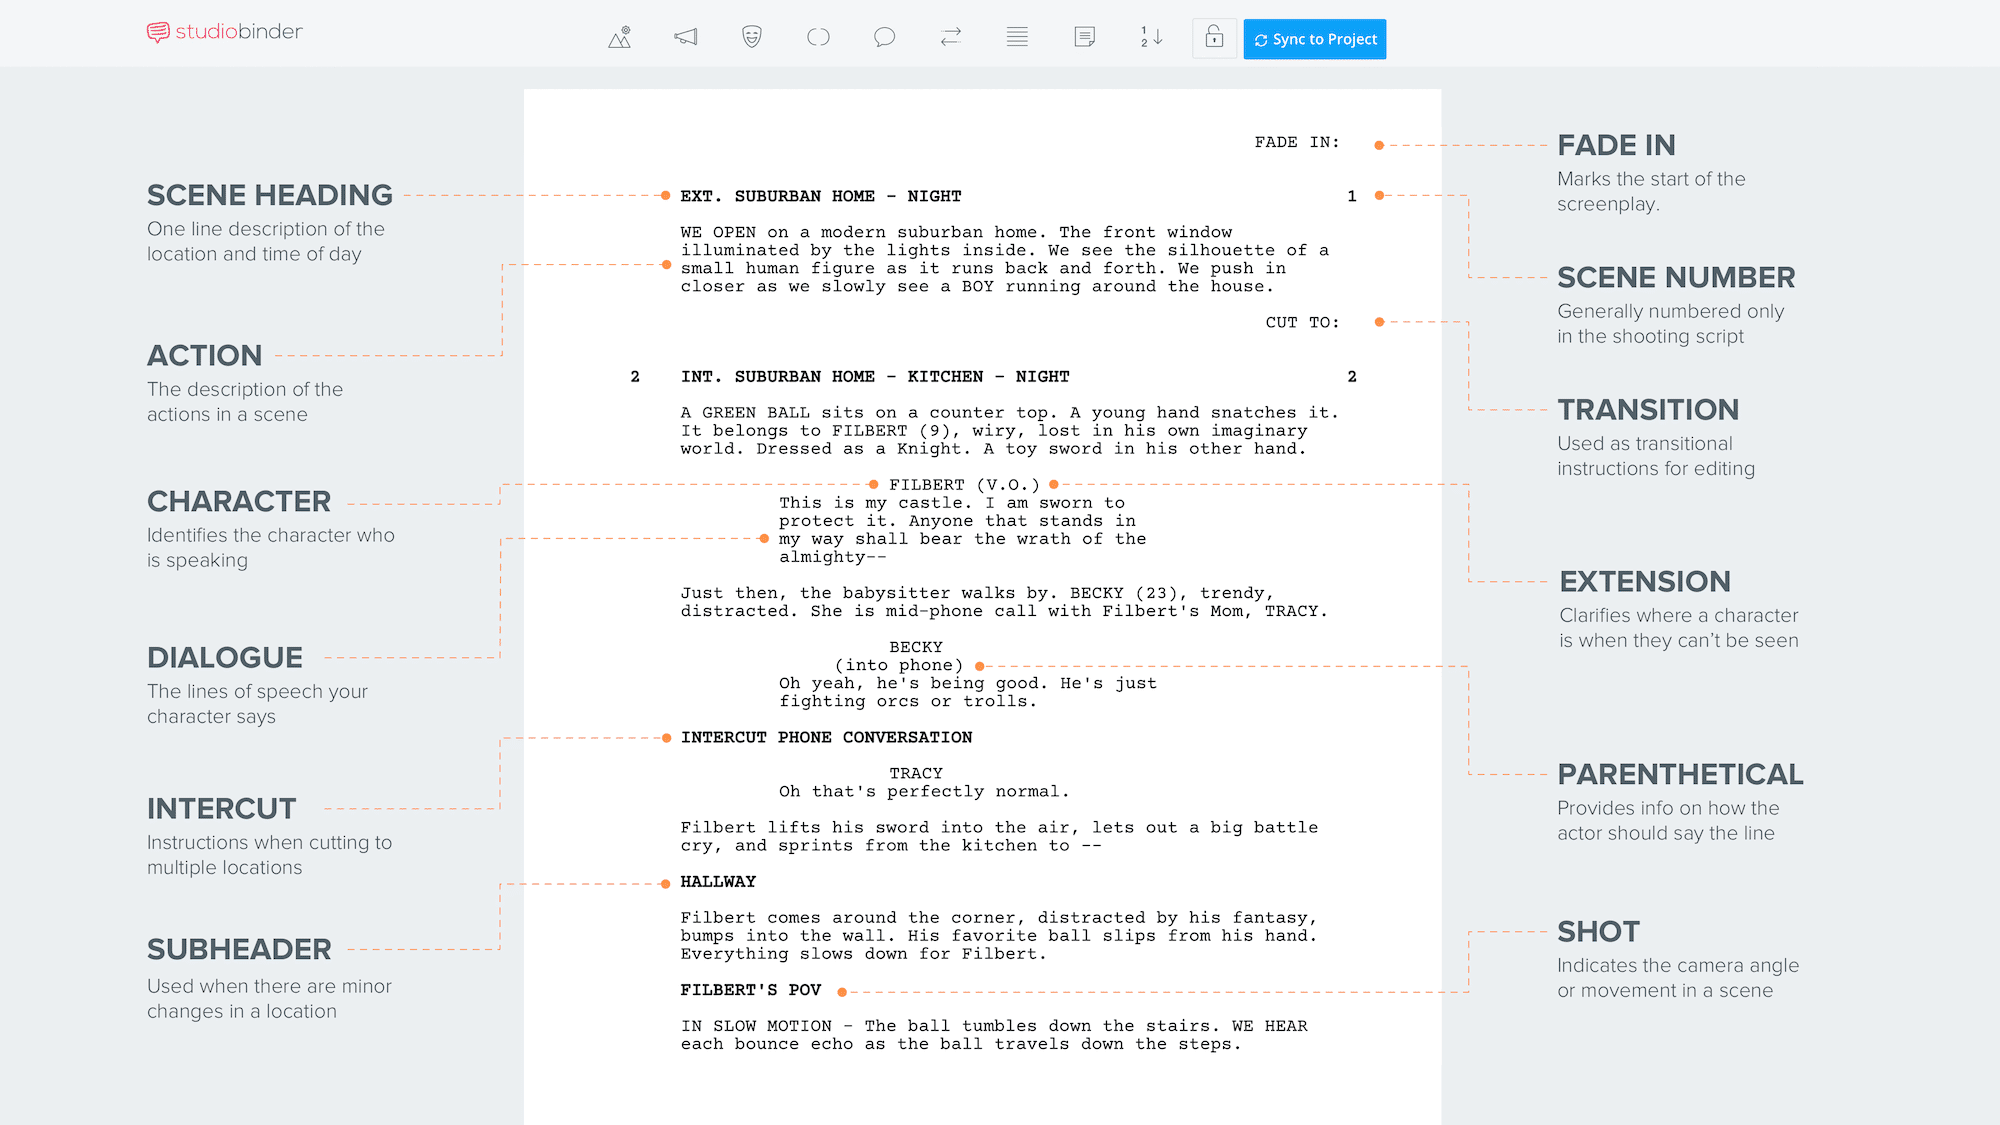 how_to_format_a_screenplay_guide_-_studiobinder_free_screenwriting_software